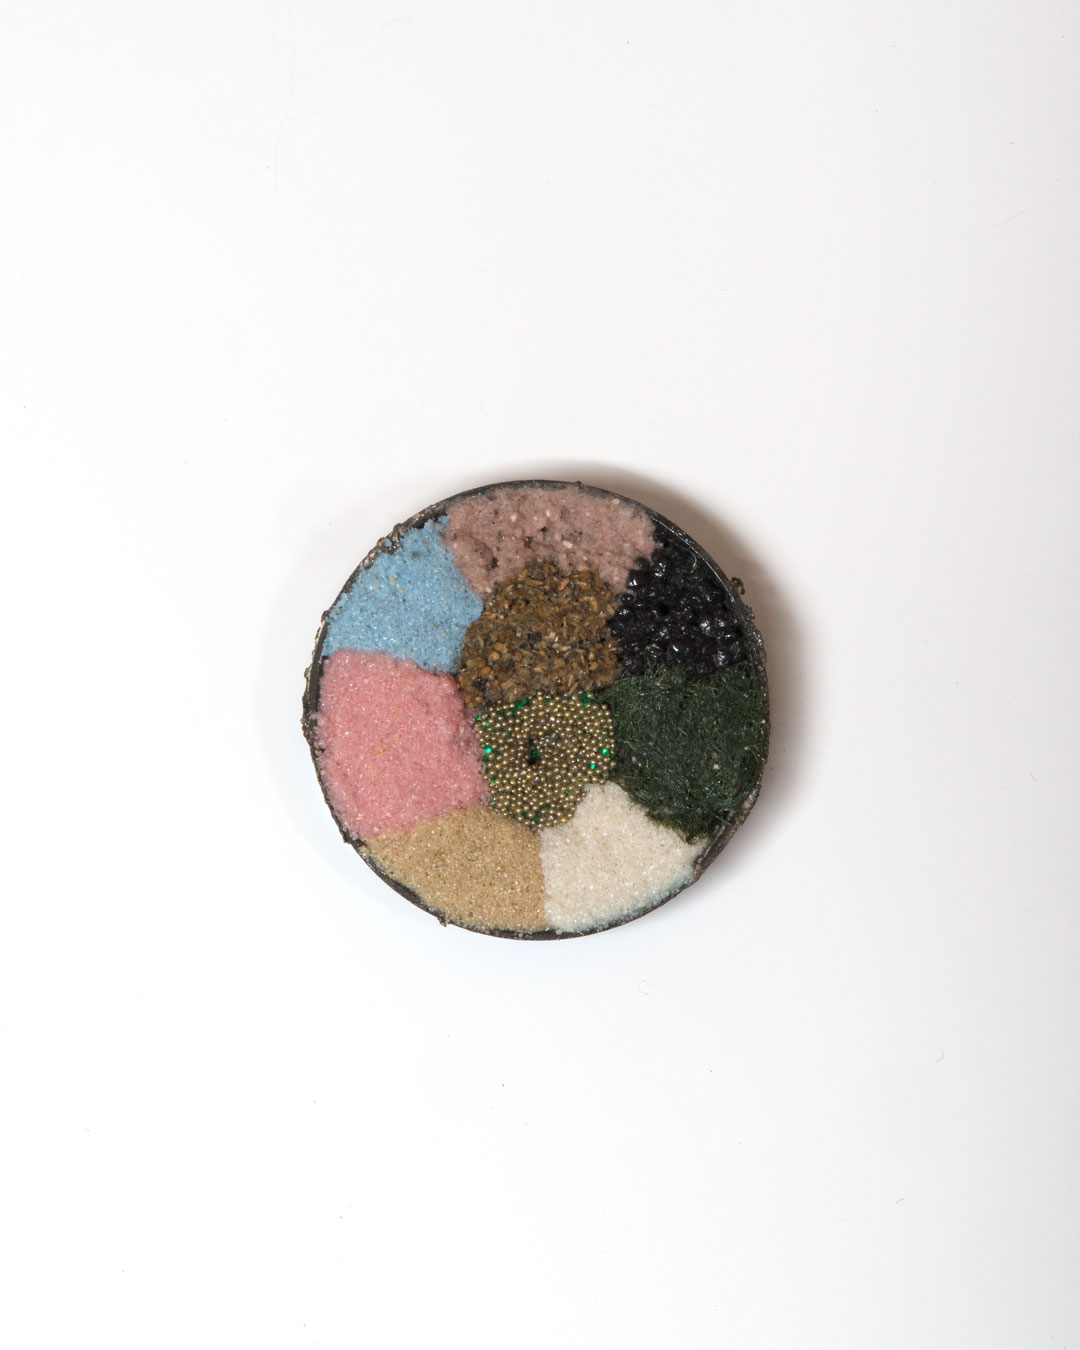 Lisa Walker, untitled, 1998, brooch; silver, sand, stones, fake grass, plastic, €3650